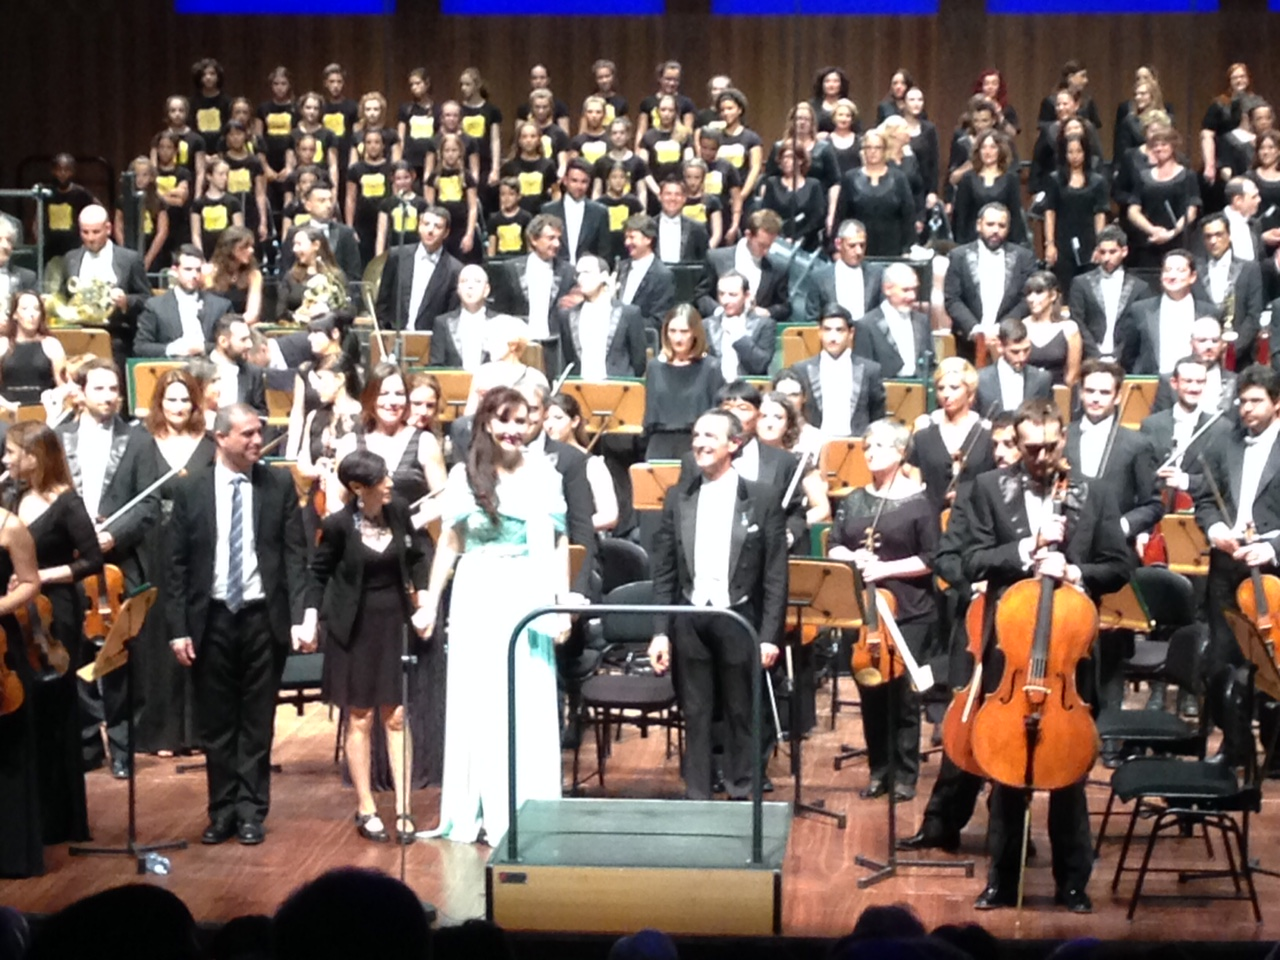 Montero y Grieg darán el adiós de la Orquesta de Gran Canaria